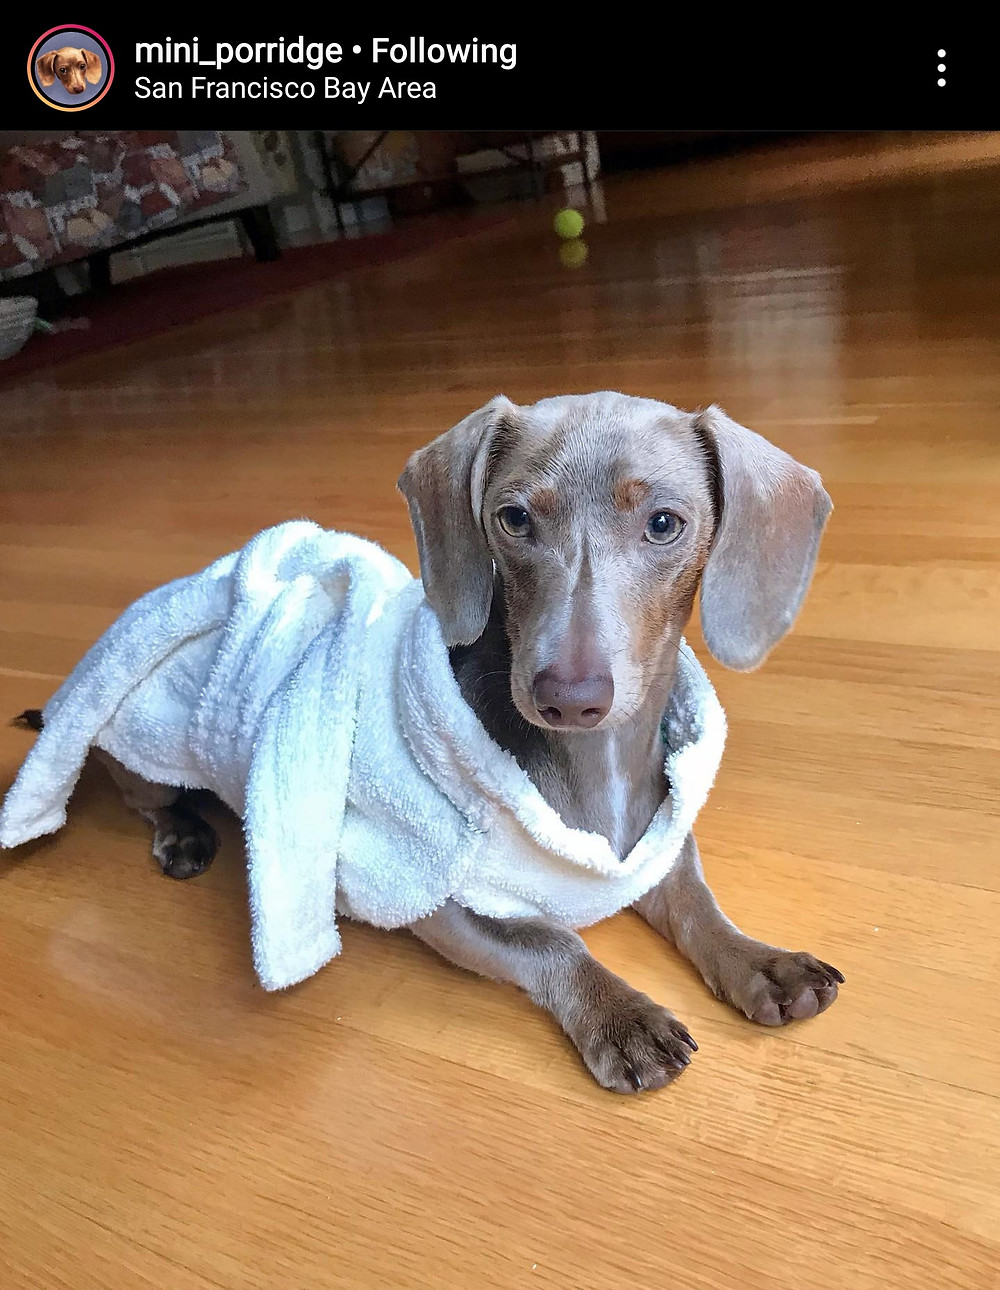 Miss Porridge is a mini doxie dog. She has a long body and short legs. She is in our ivory bathrobe lounging on wood flooring.